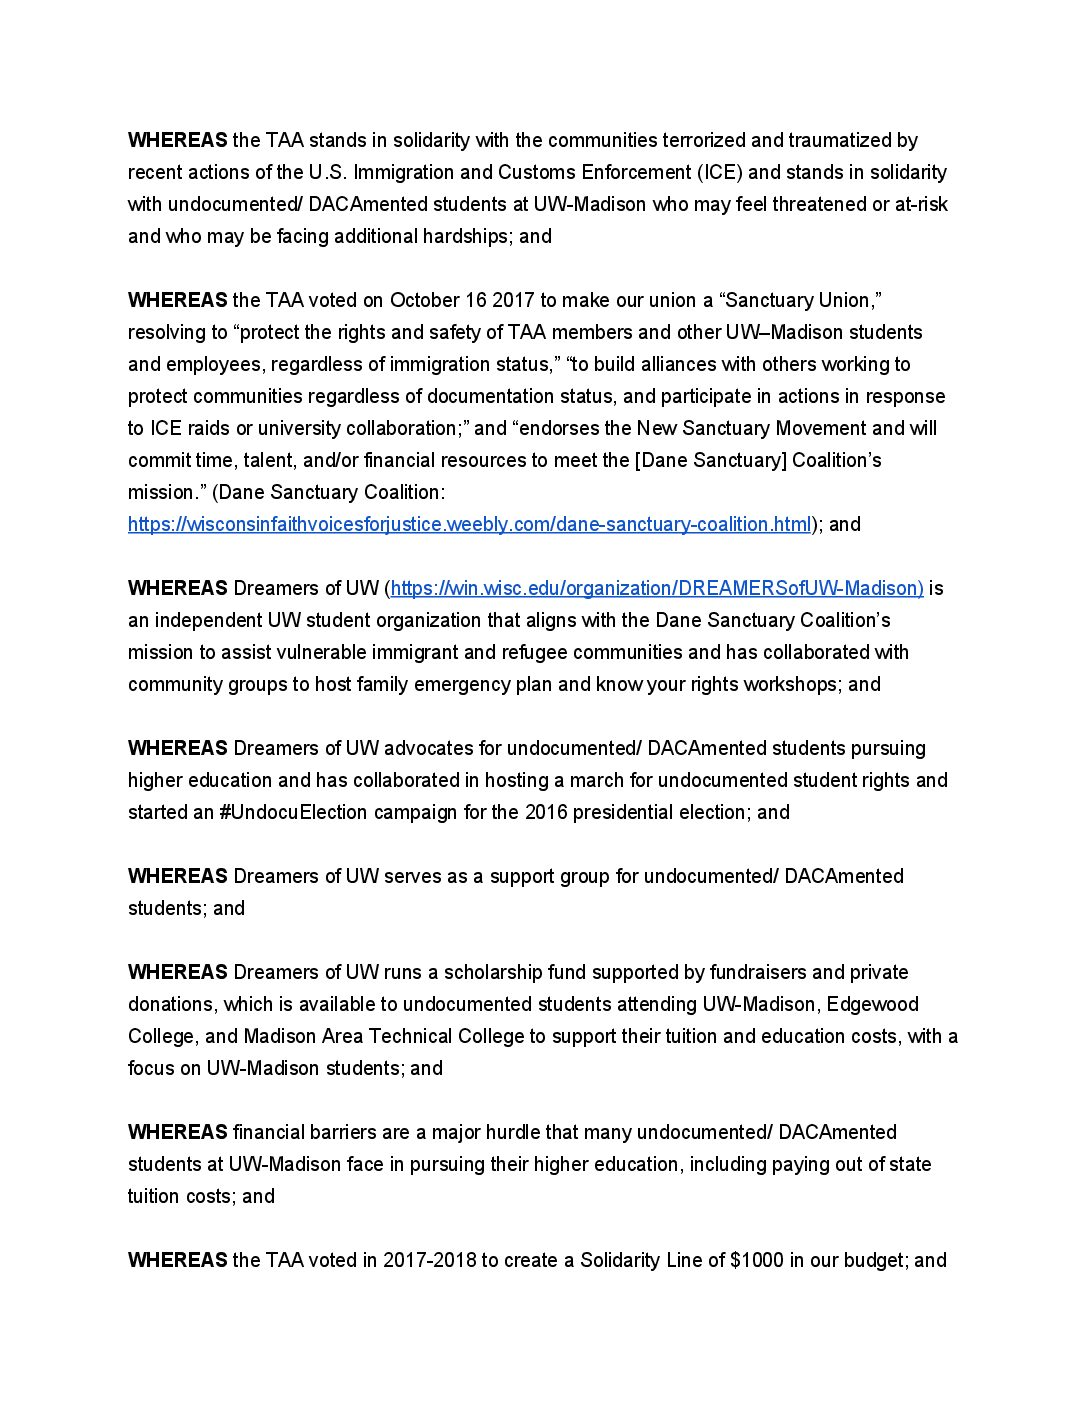 Solidarity With Dreamers Of Uw  Taa  Graduate Worker. Argumentative Essay Outline Template. Sorority Recommendation Letter Template. Free Wanted Poster Template. Dresses To Wear For Graduation. Fitness Gift Certificate Template. Nurse Practitioner Graduation Gifts. Teenage Birthday Invitations Template Free. Fake Book Cover Generator